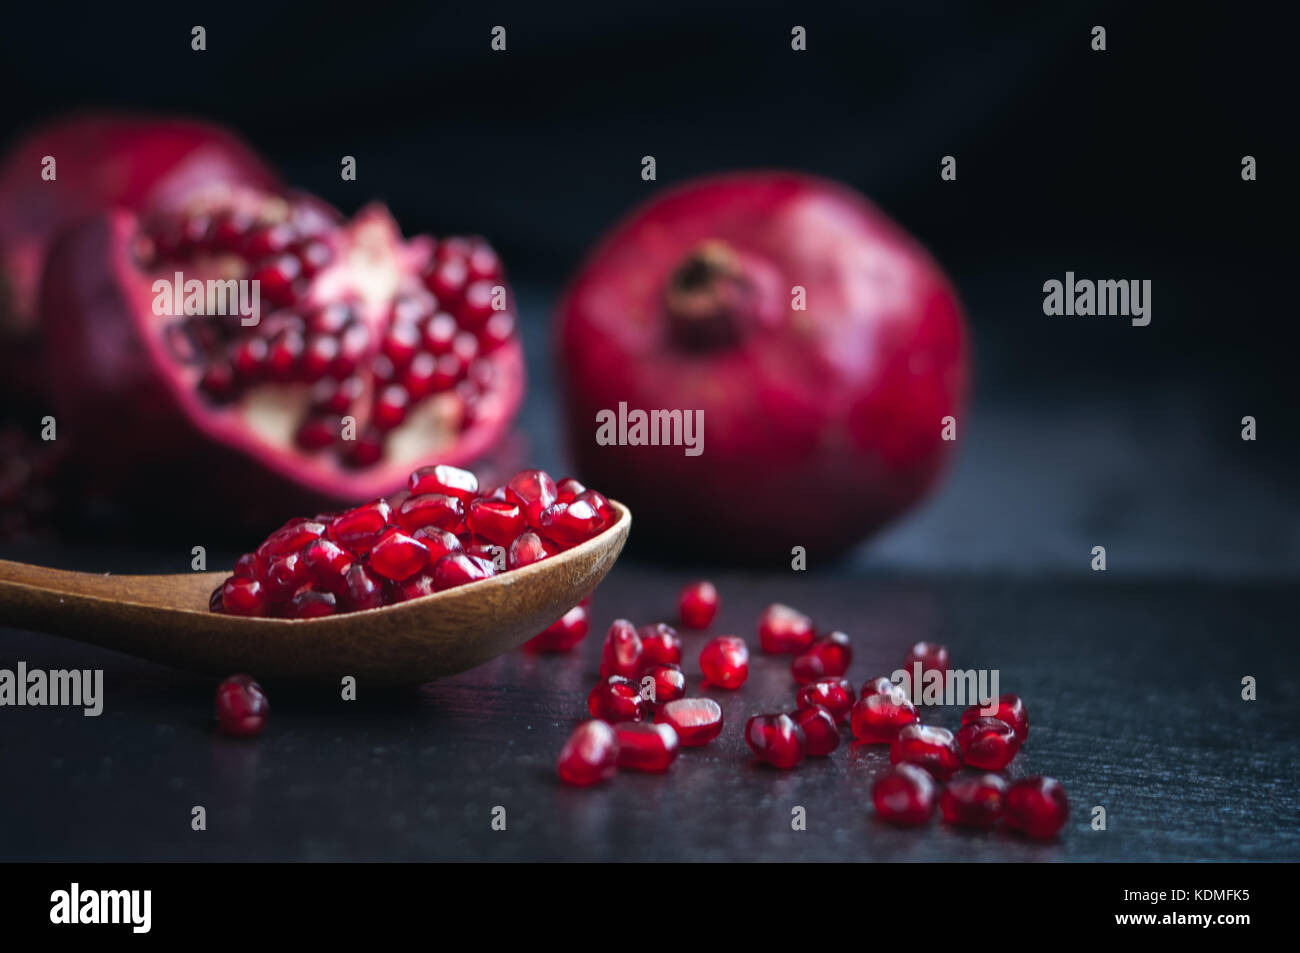 fresh juicy pomegranate diet fruit is a natural antioxidant on black background - Stock Image